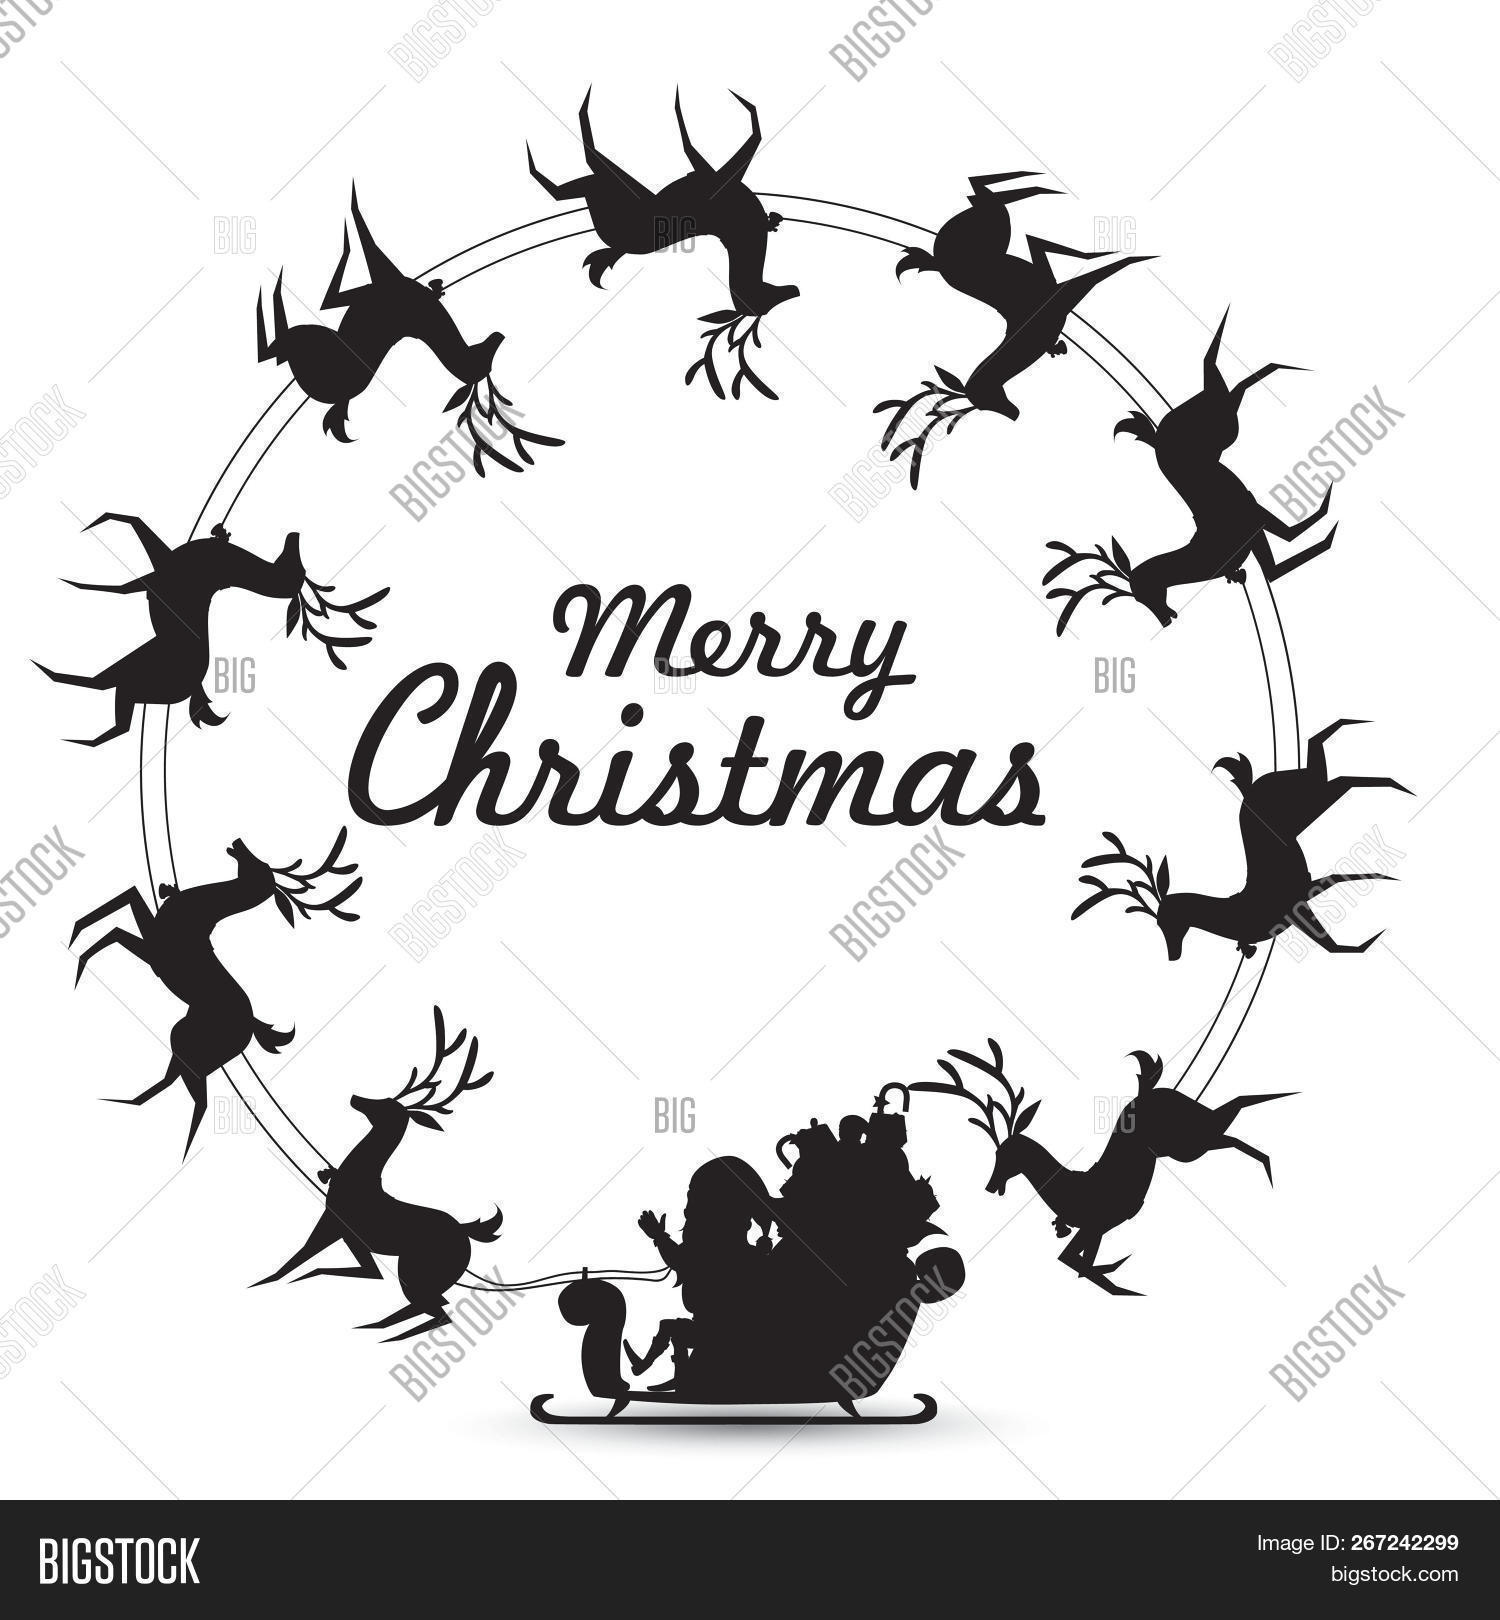 Christmas Wreath Silhouette.Christmas Wreath Image Photo Free Trial Bigstock